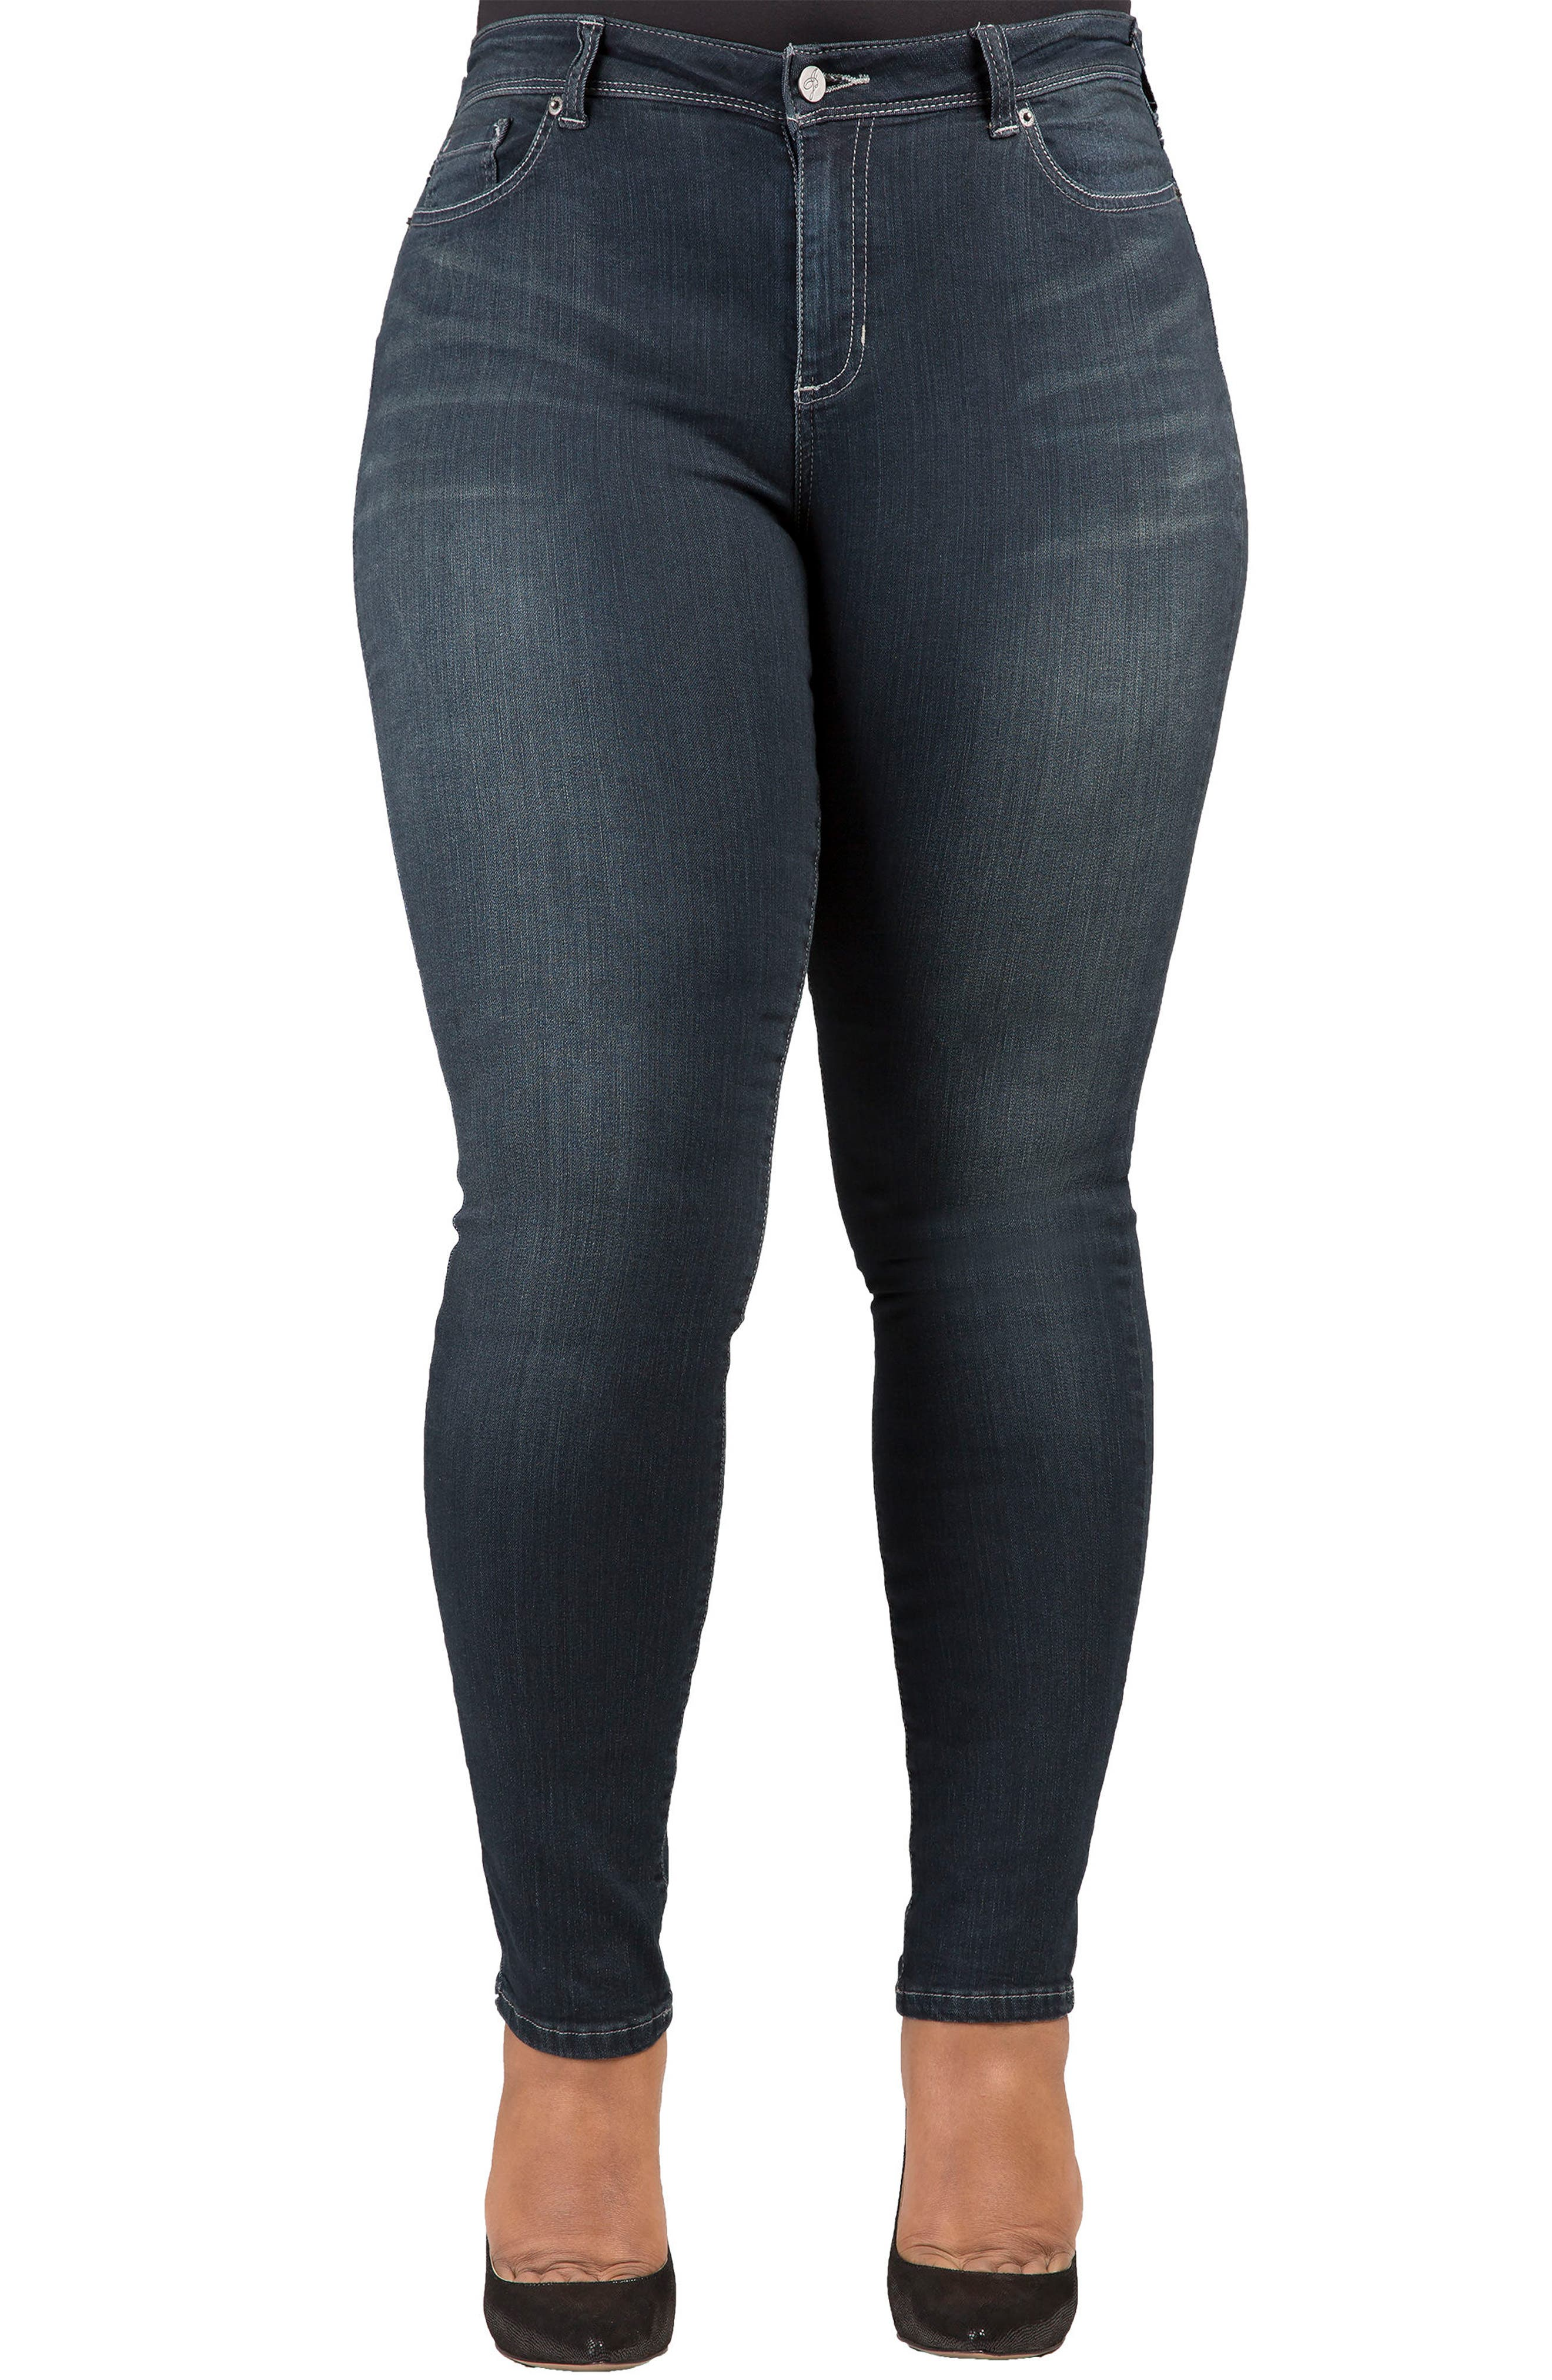 POETIC JUSTICE, 'Maya' Stretch Skinny Jeans, Main thumbnail 1, color, 1464KINGSC